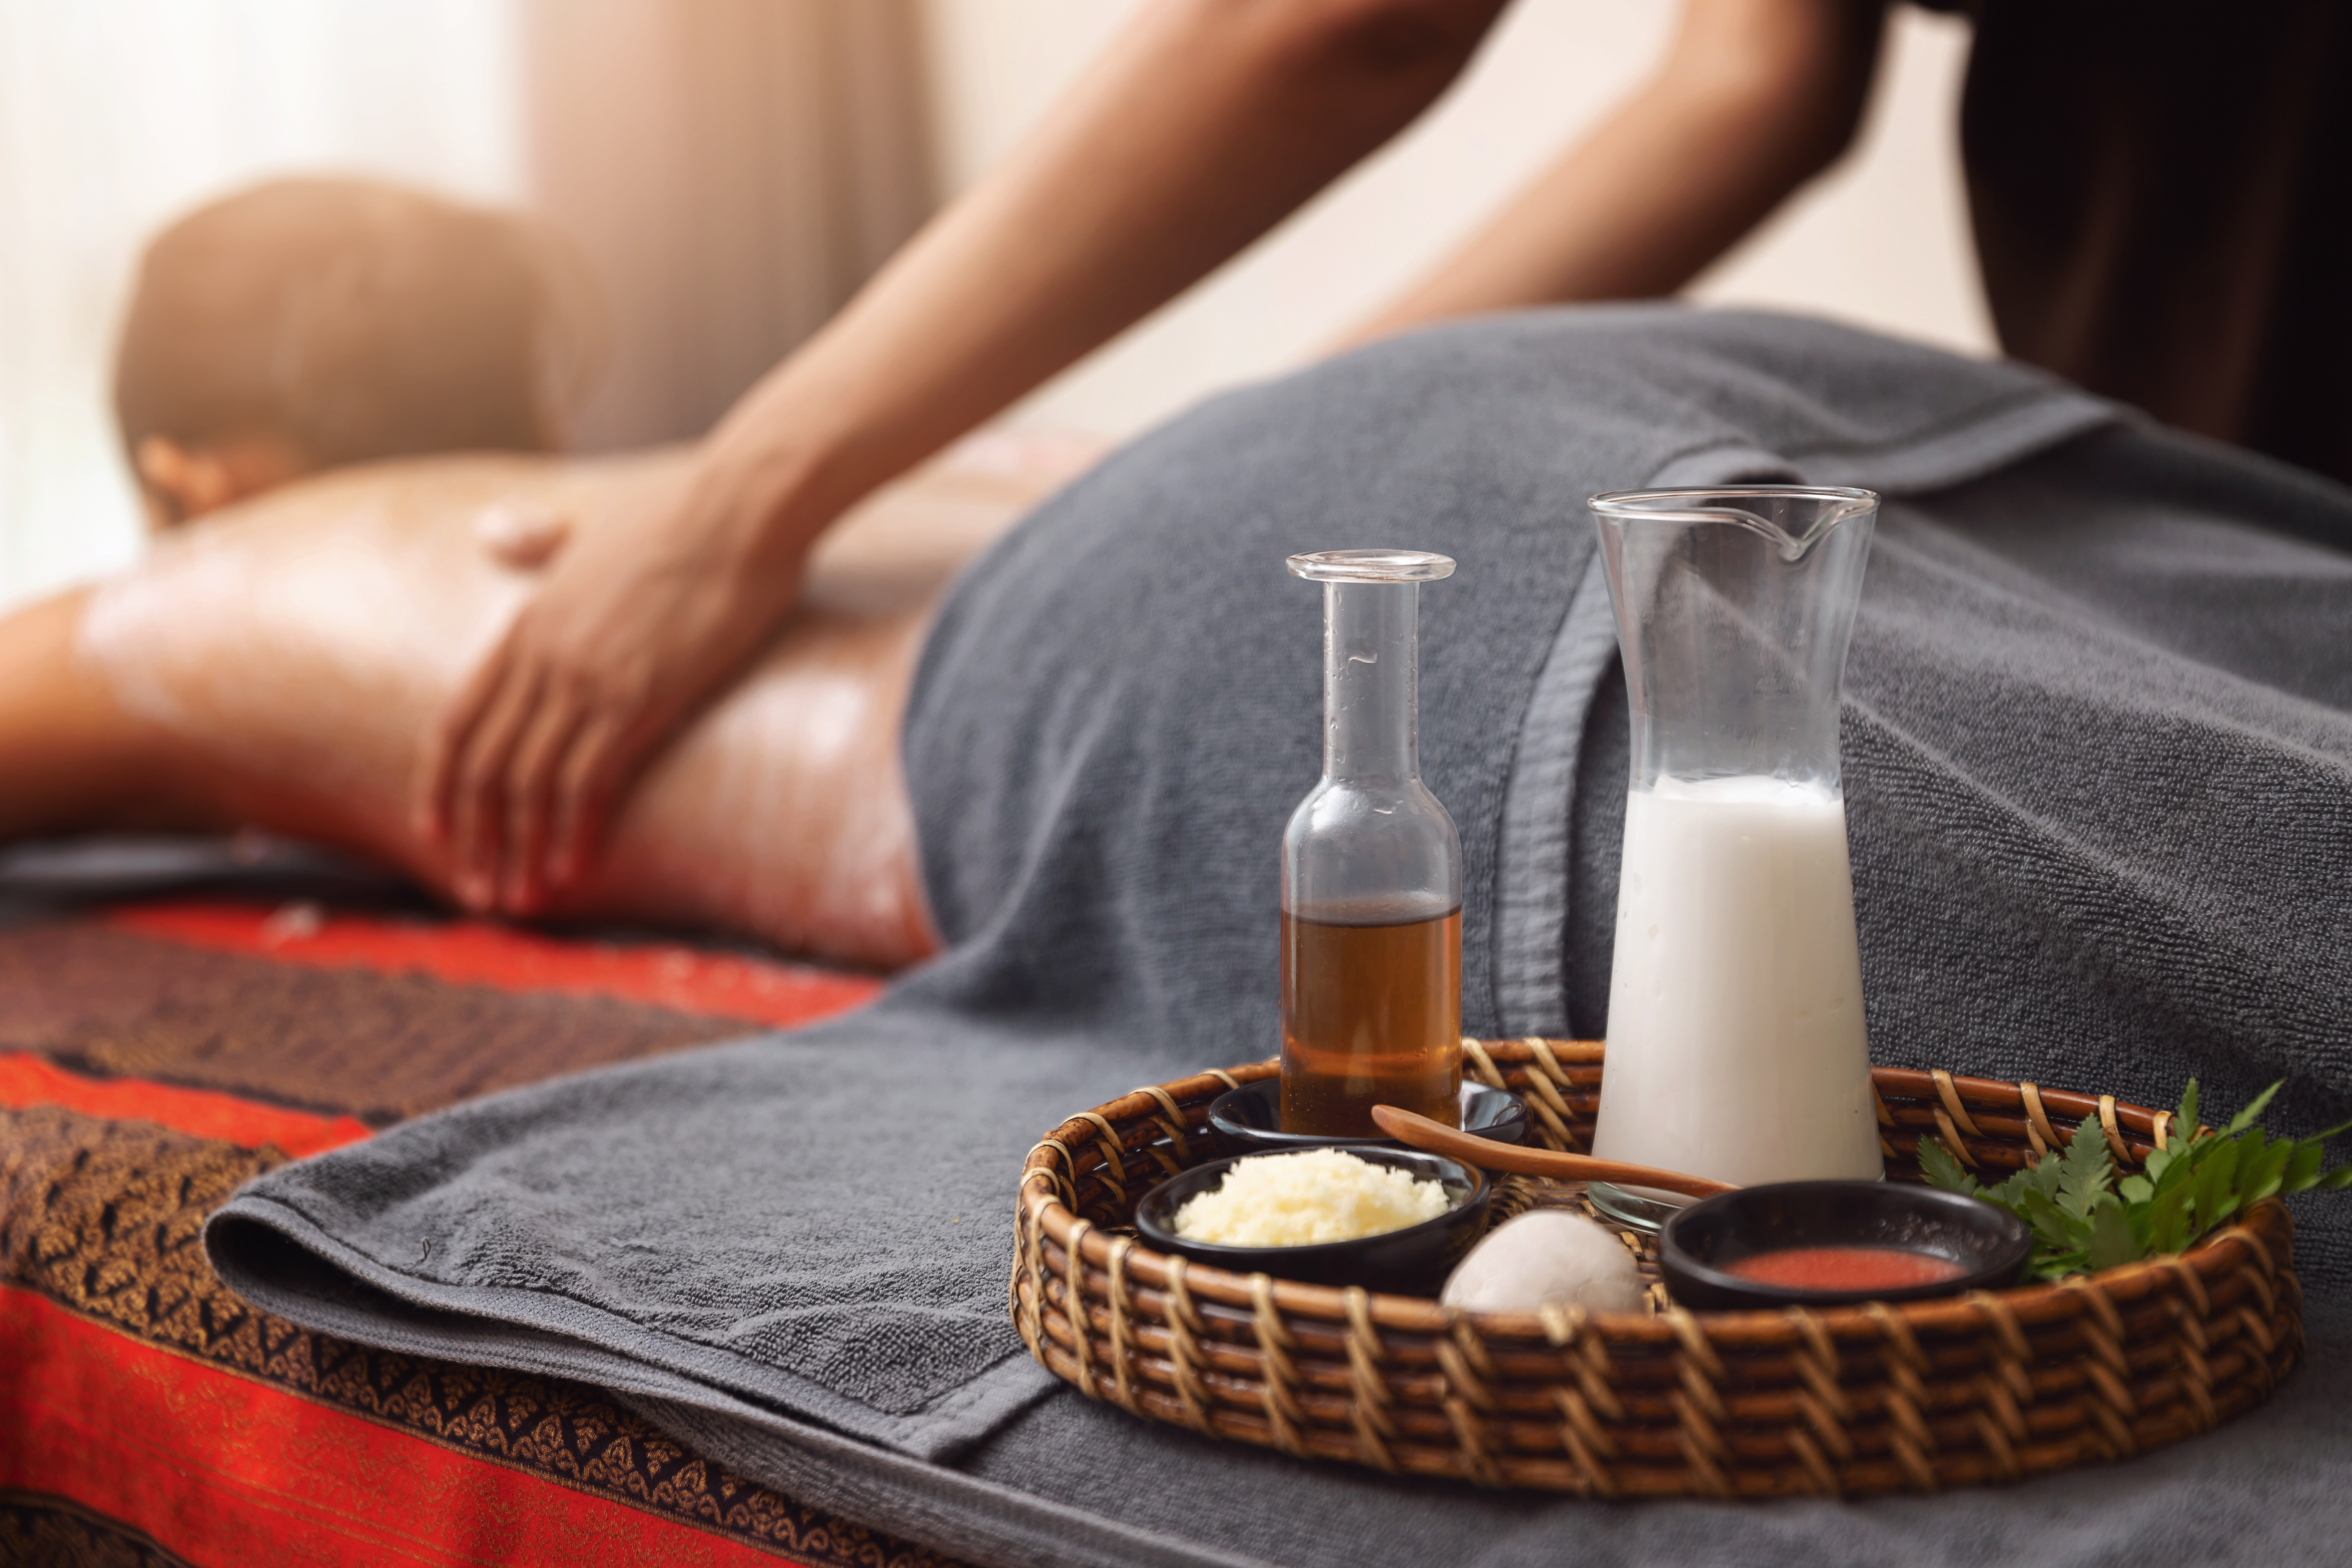 75-Min Lymphatic Drainage Full Body Massage with Spinal Tissue Massage for 1 Person (1 Session)